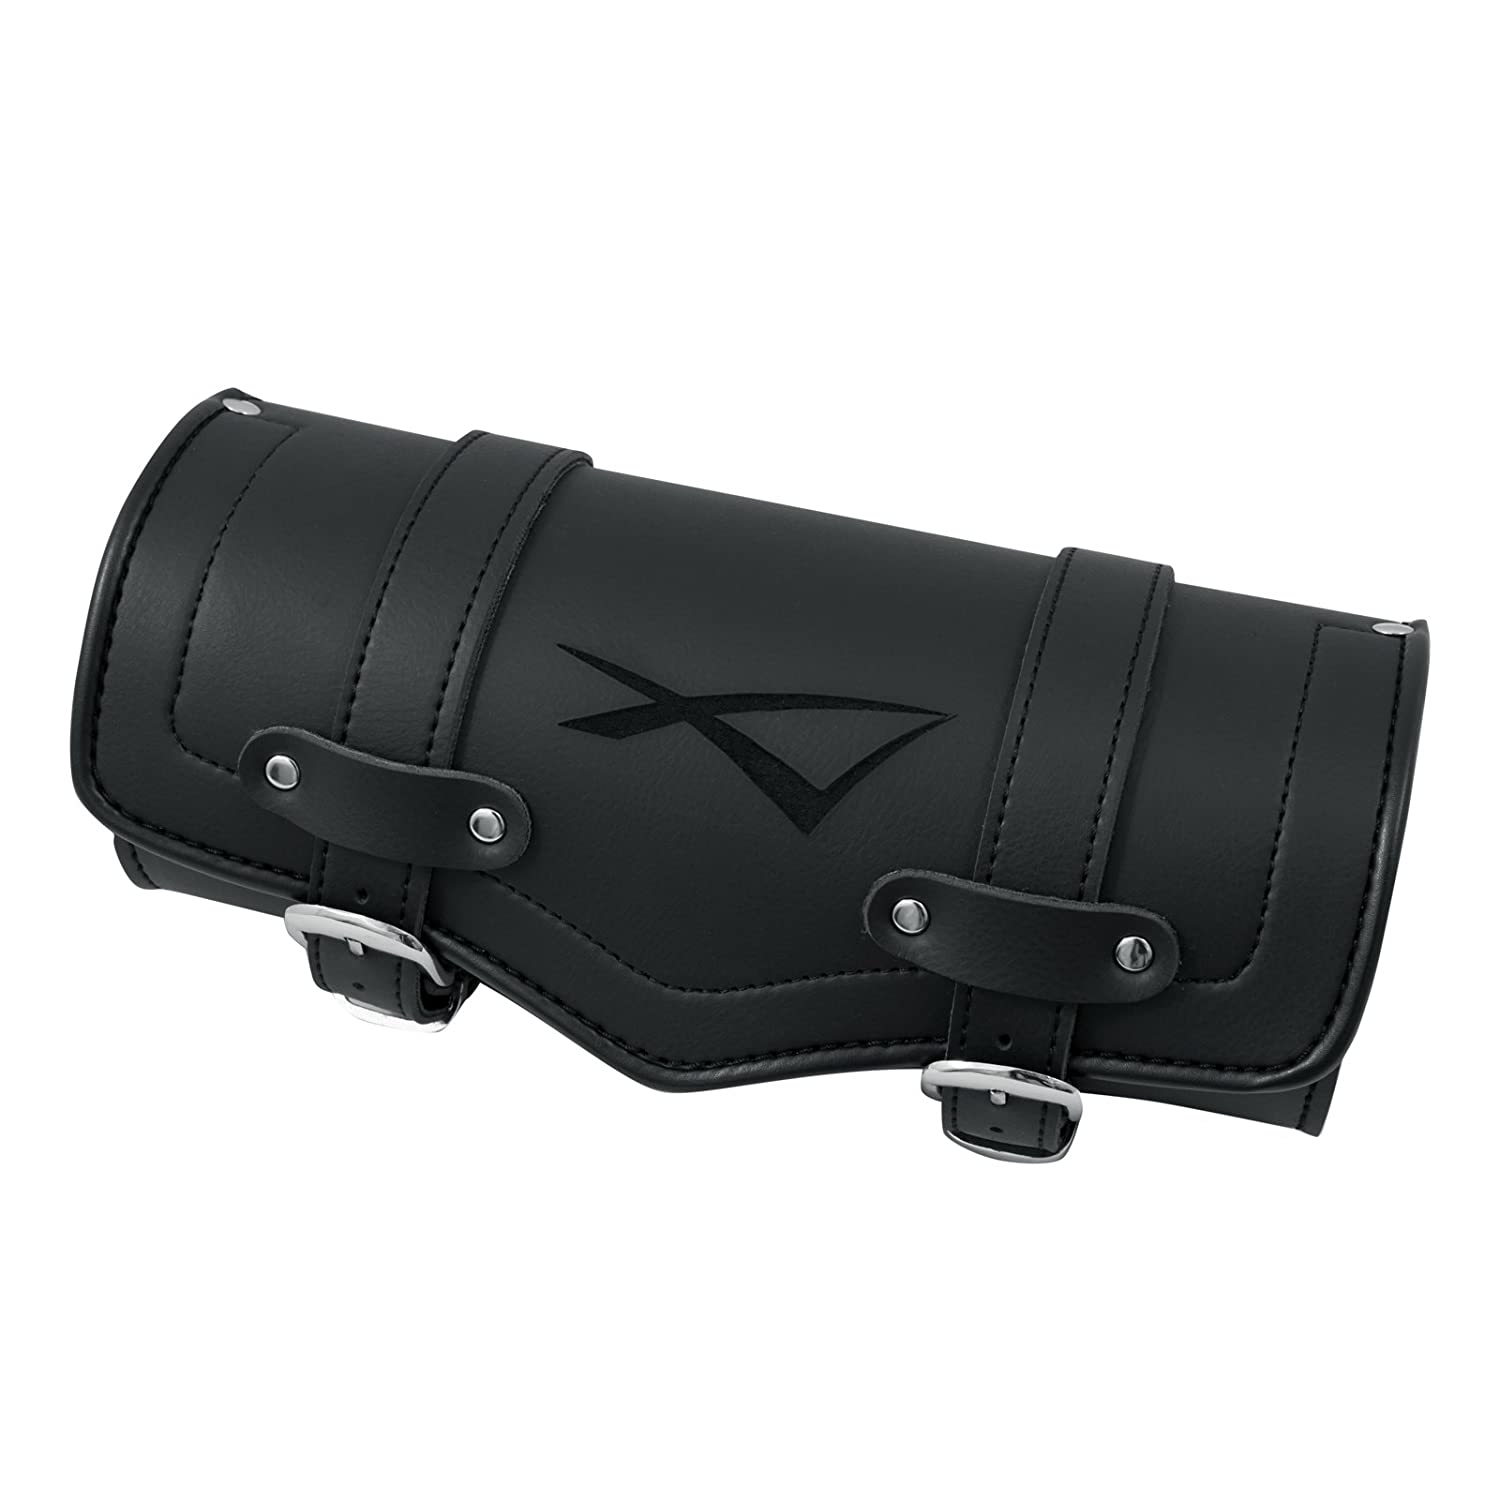 A-pro Roll Tool Bag Saddle Luggage Pannier Davidson Hi Quality Motorcycle Black 5180000034474